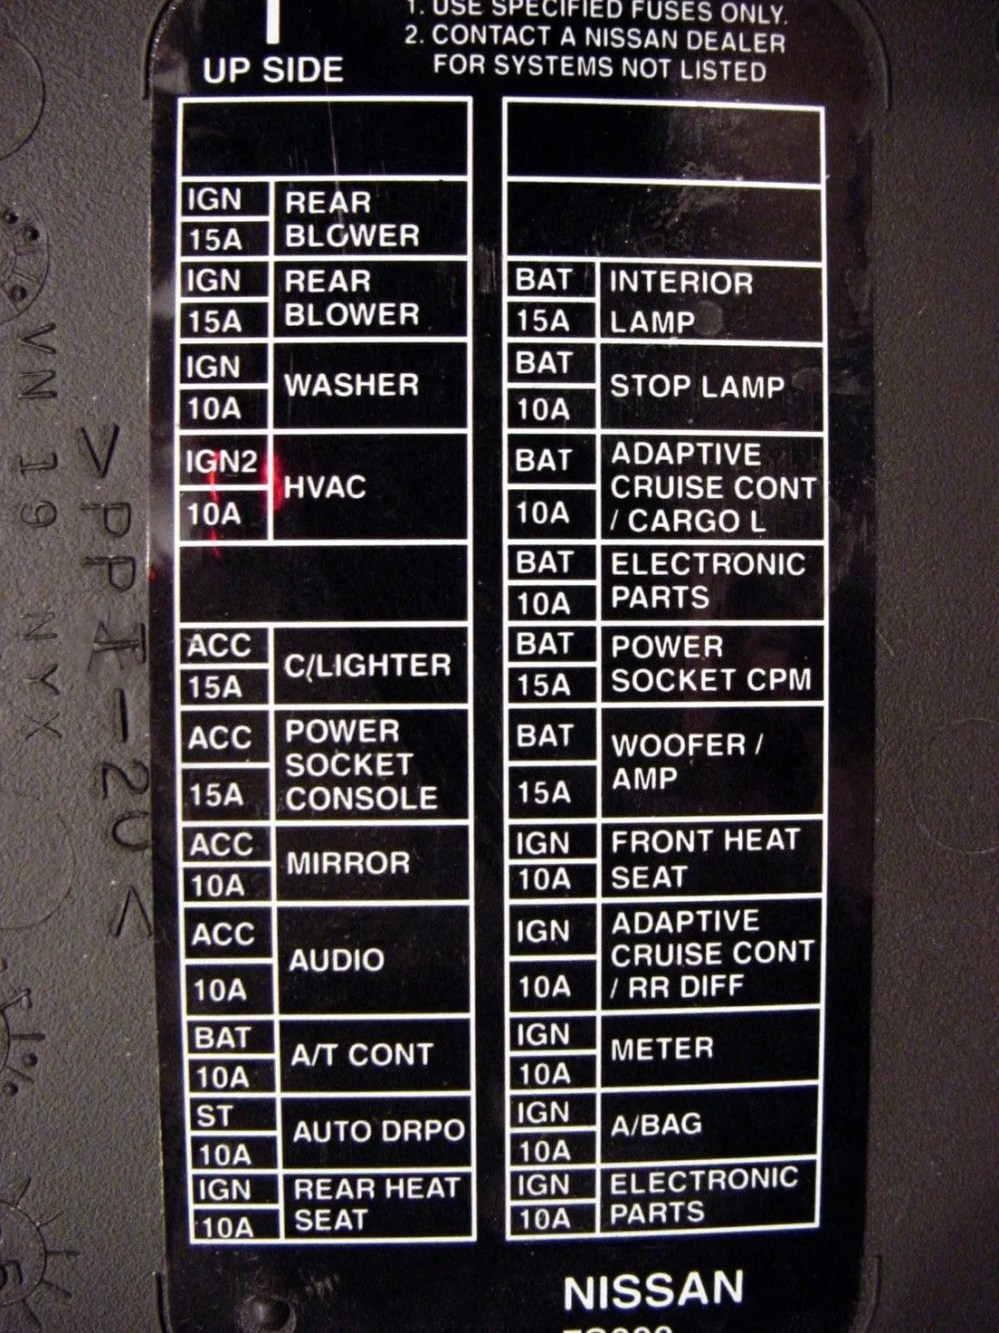 medium resolution of 2005 nissan armada fuse box diagram wiring diagram forward 2005 nissan pathfinder fuse box diagram 2005 nissan armada fuse panel diagram